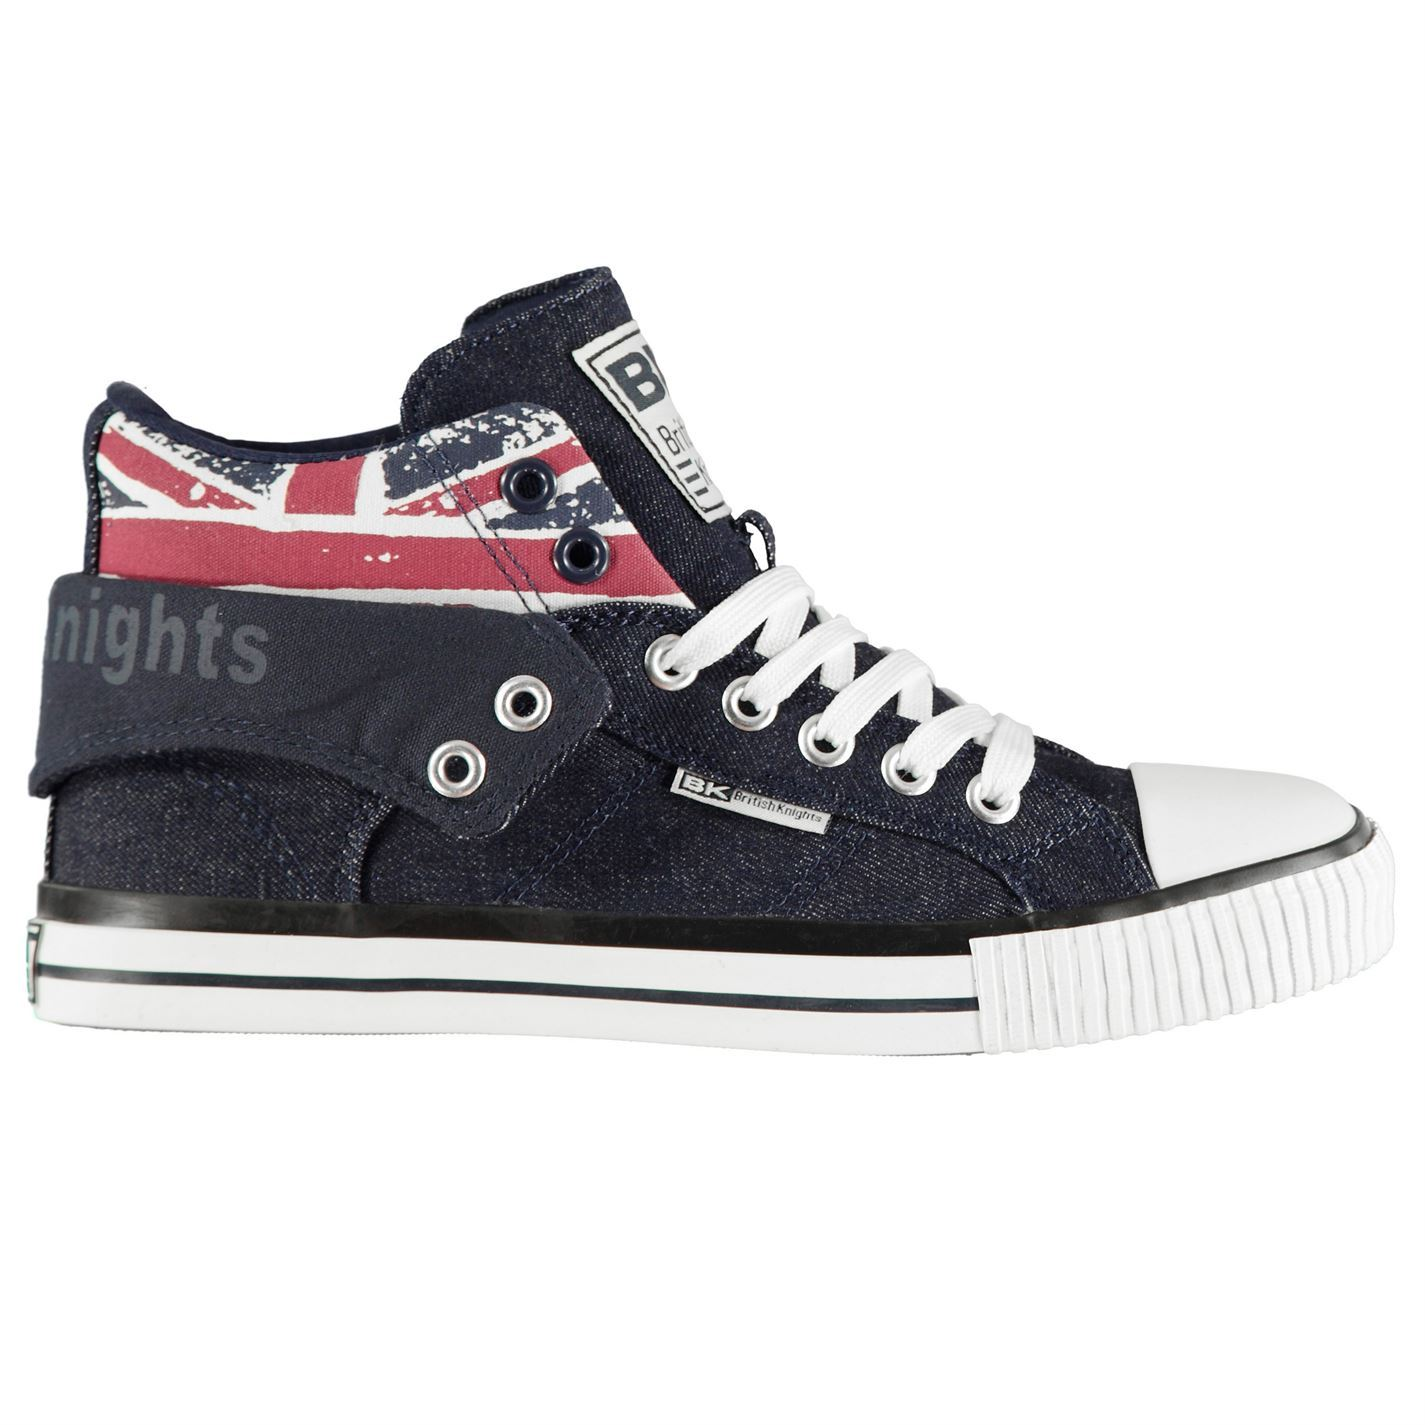 Supply British Knights Roco Pu Hi Top Trainers Womens Athleisure Shoes Sneakers Clothing, Shoes & Accessories